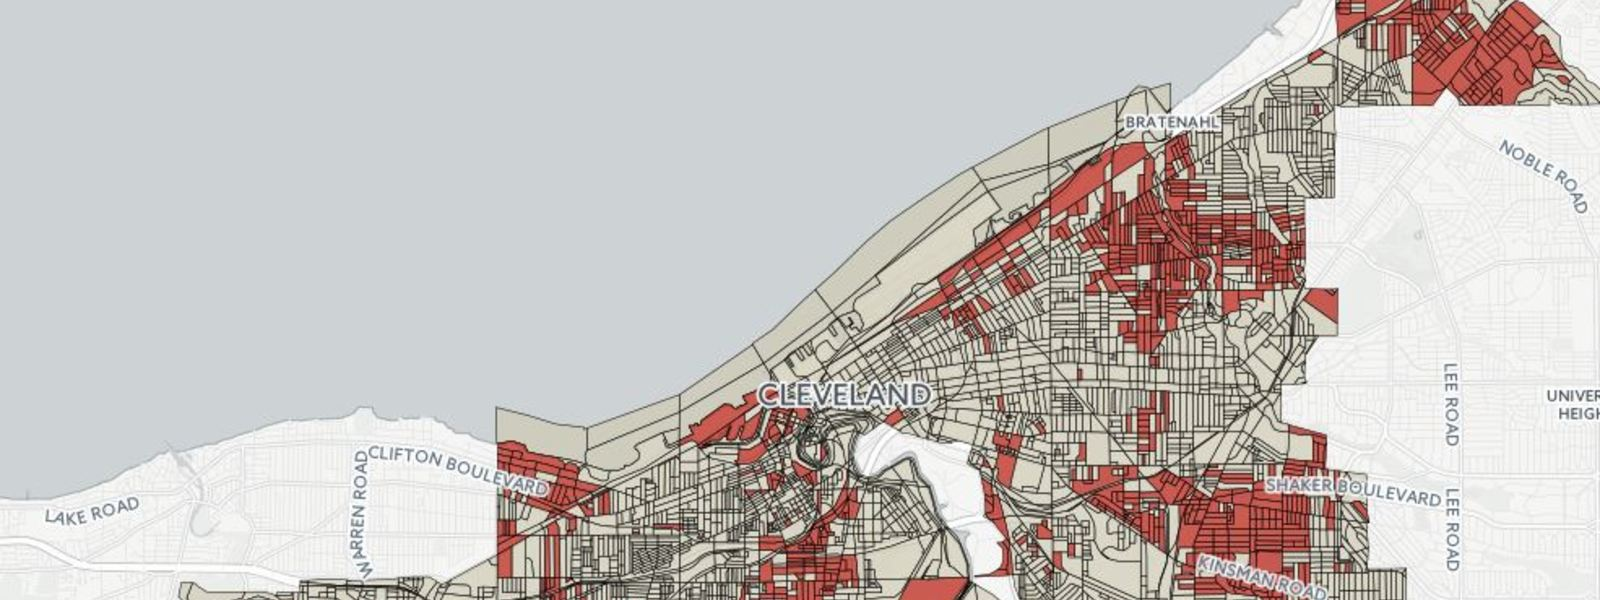 Did One Good Map Bring Low Cost Internet to Thousands of Low Income Cleveland Residents?